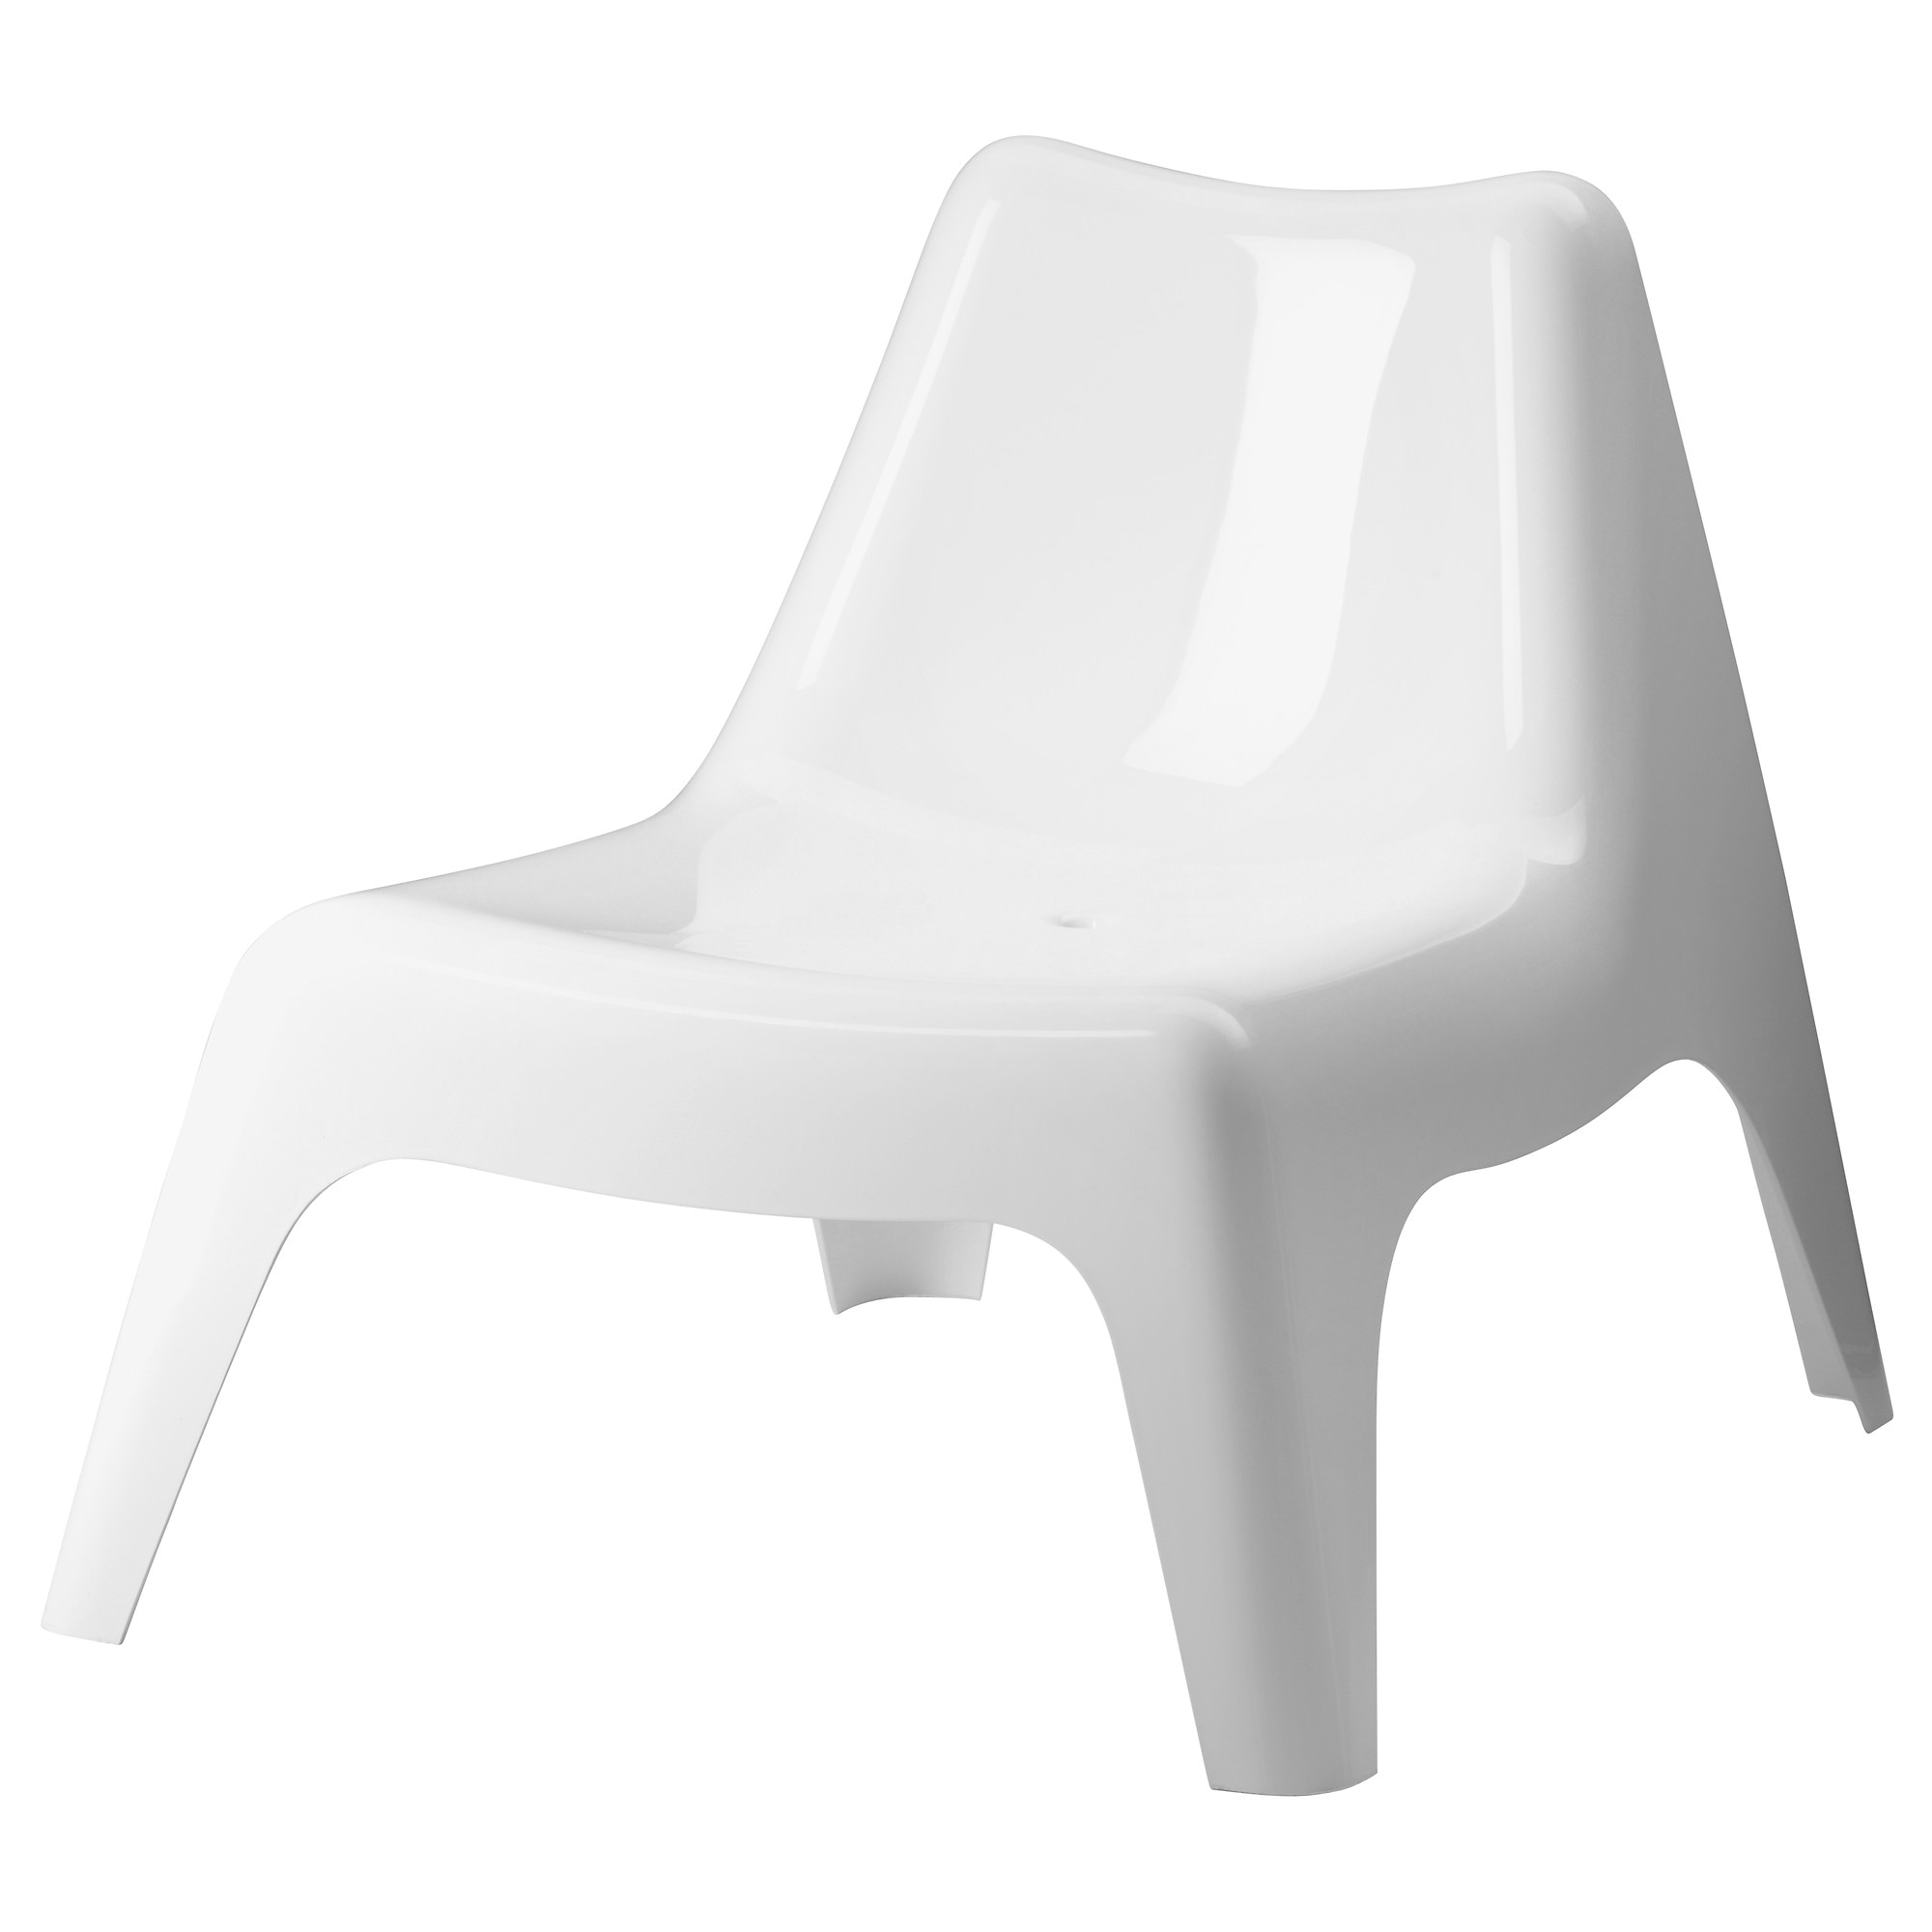 White Chairs Ikea Chair White Chairs Ikea Chair T Nongzico